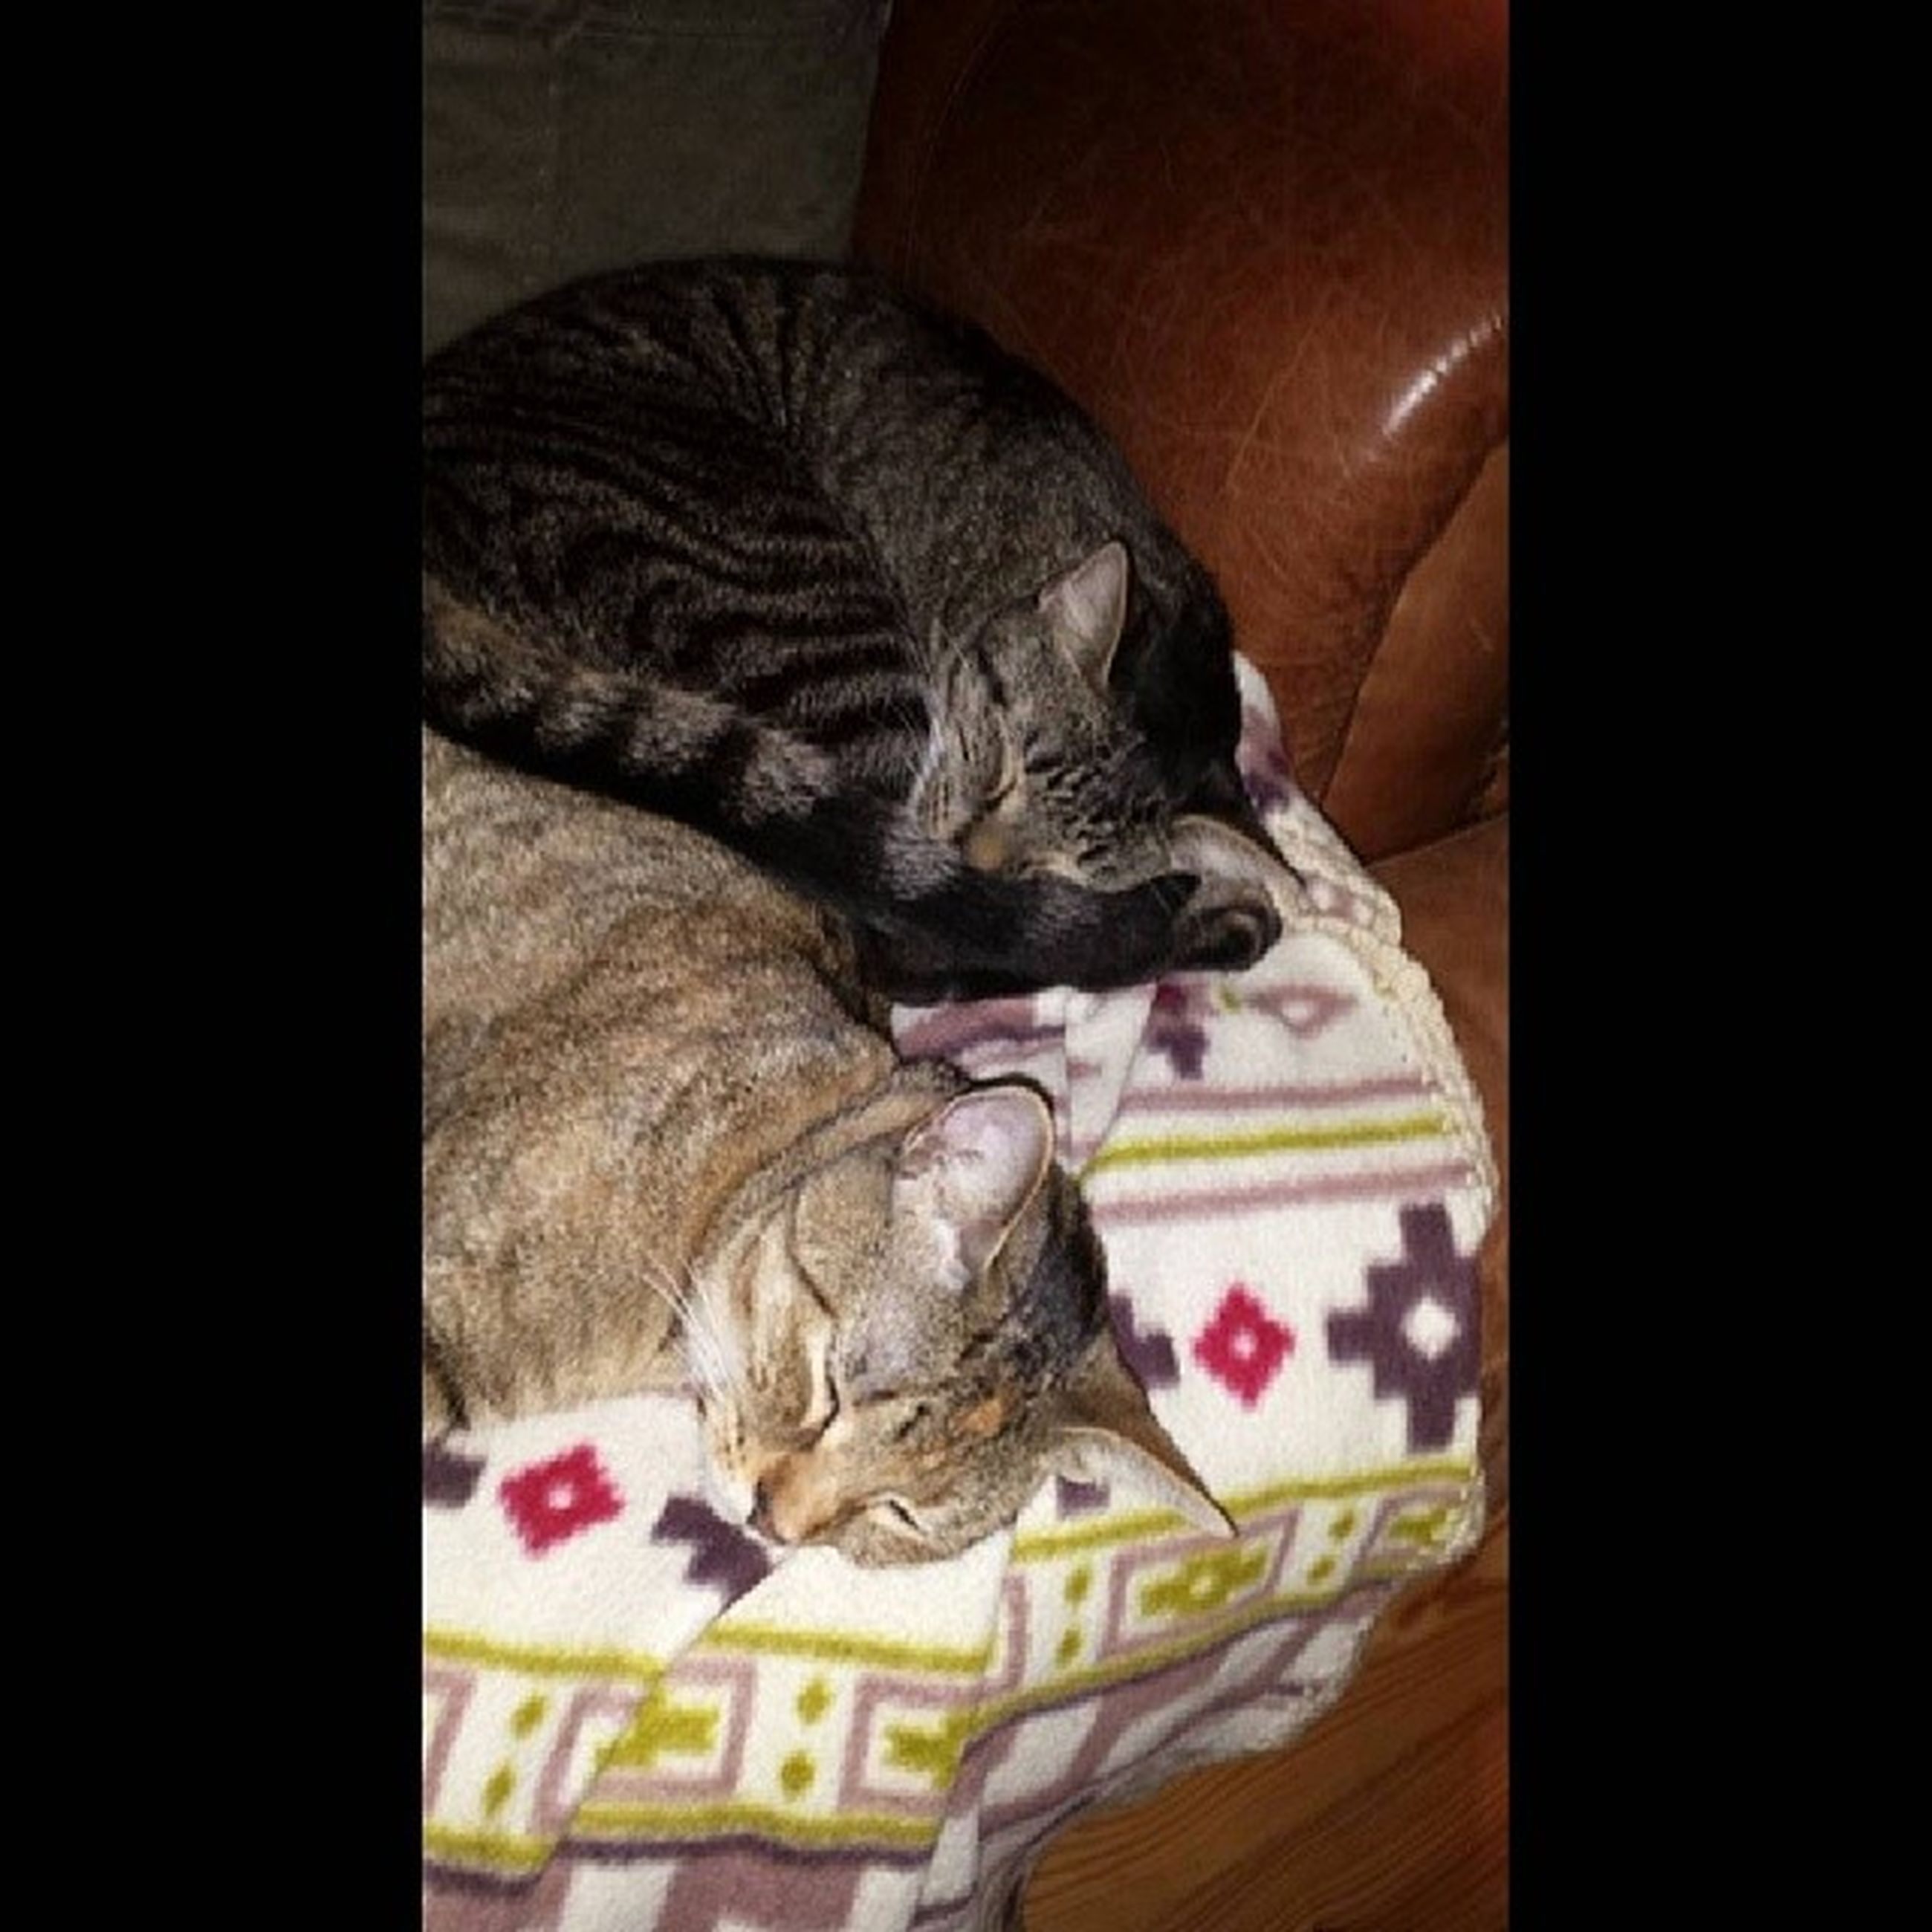 pets, animal themes, domestic animals, mammal, one animal, indoors, relaxation, domestic cat, sleeping, resting, lying down, cat, bed, feline, home interior, comfortable, sofa, high angle view, eyes closed, two animals